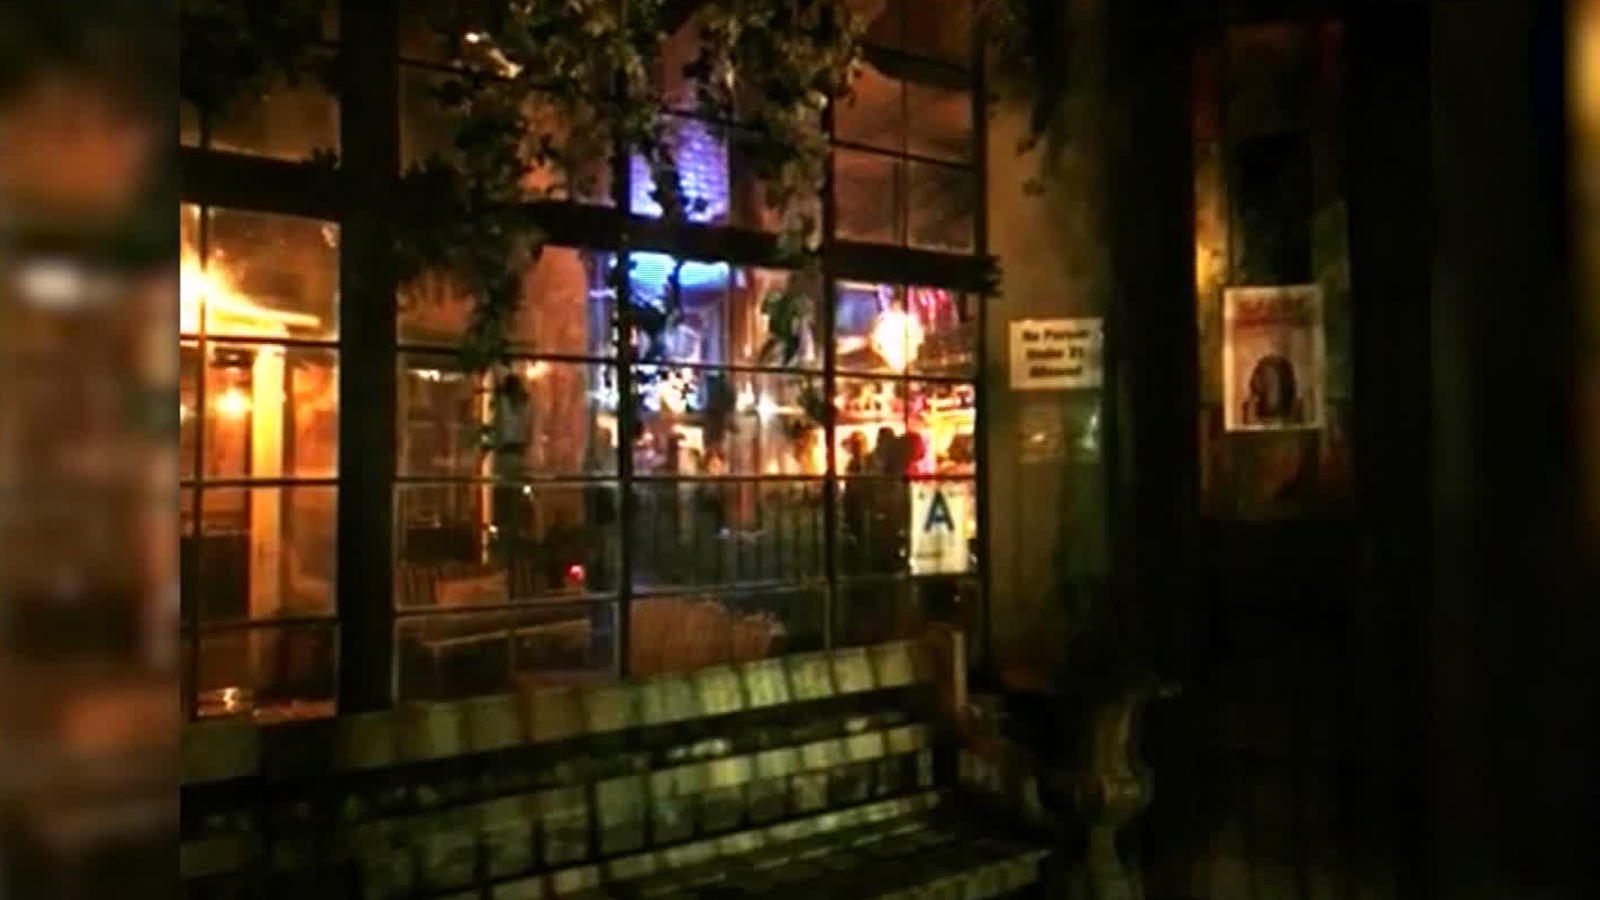 Dozens of people attended a party at a Los Angeles bar without wearing masks or adhering to social distancing guidelines. (CNN)